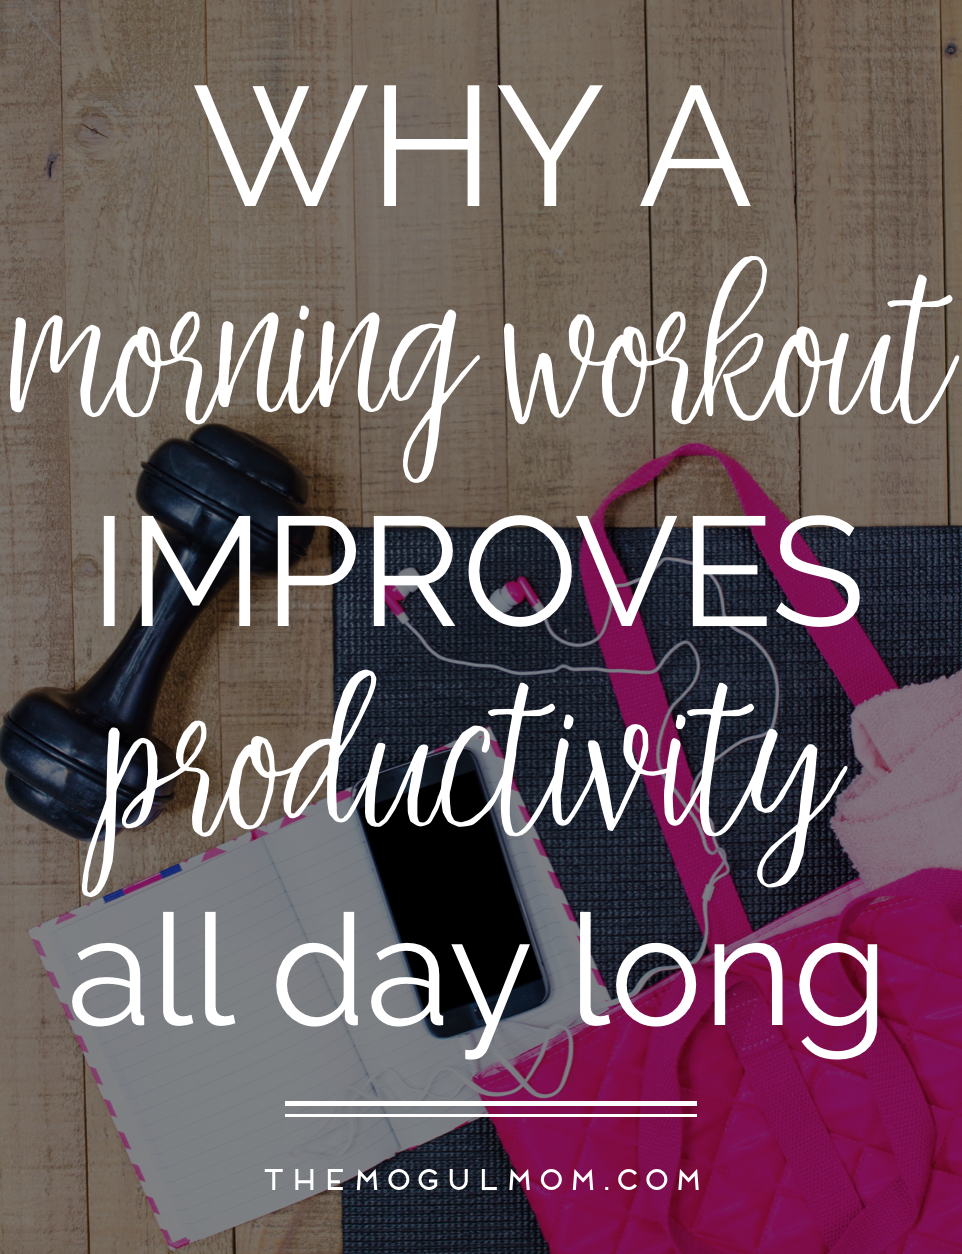 Can A Morning Workout Really Improve Productivity?